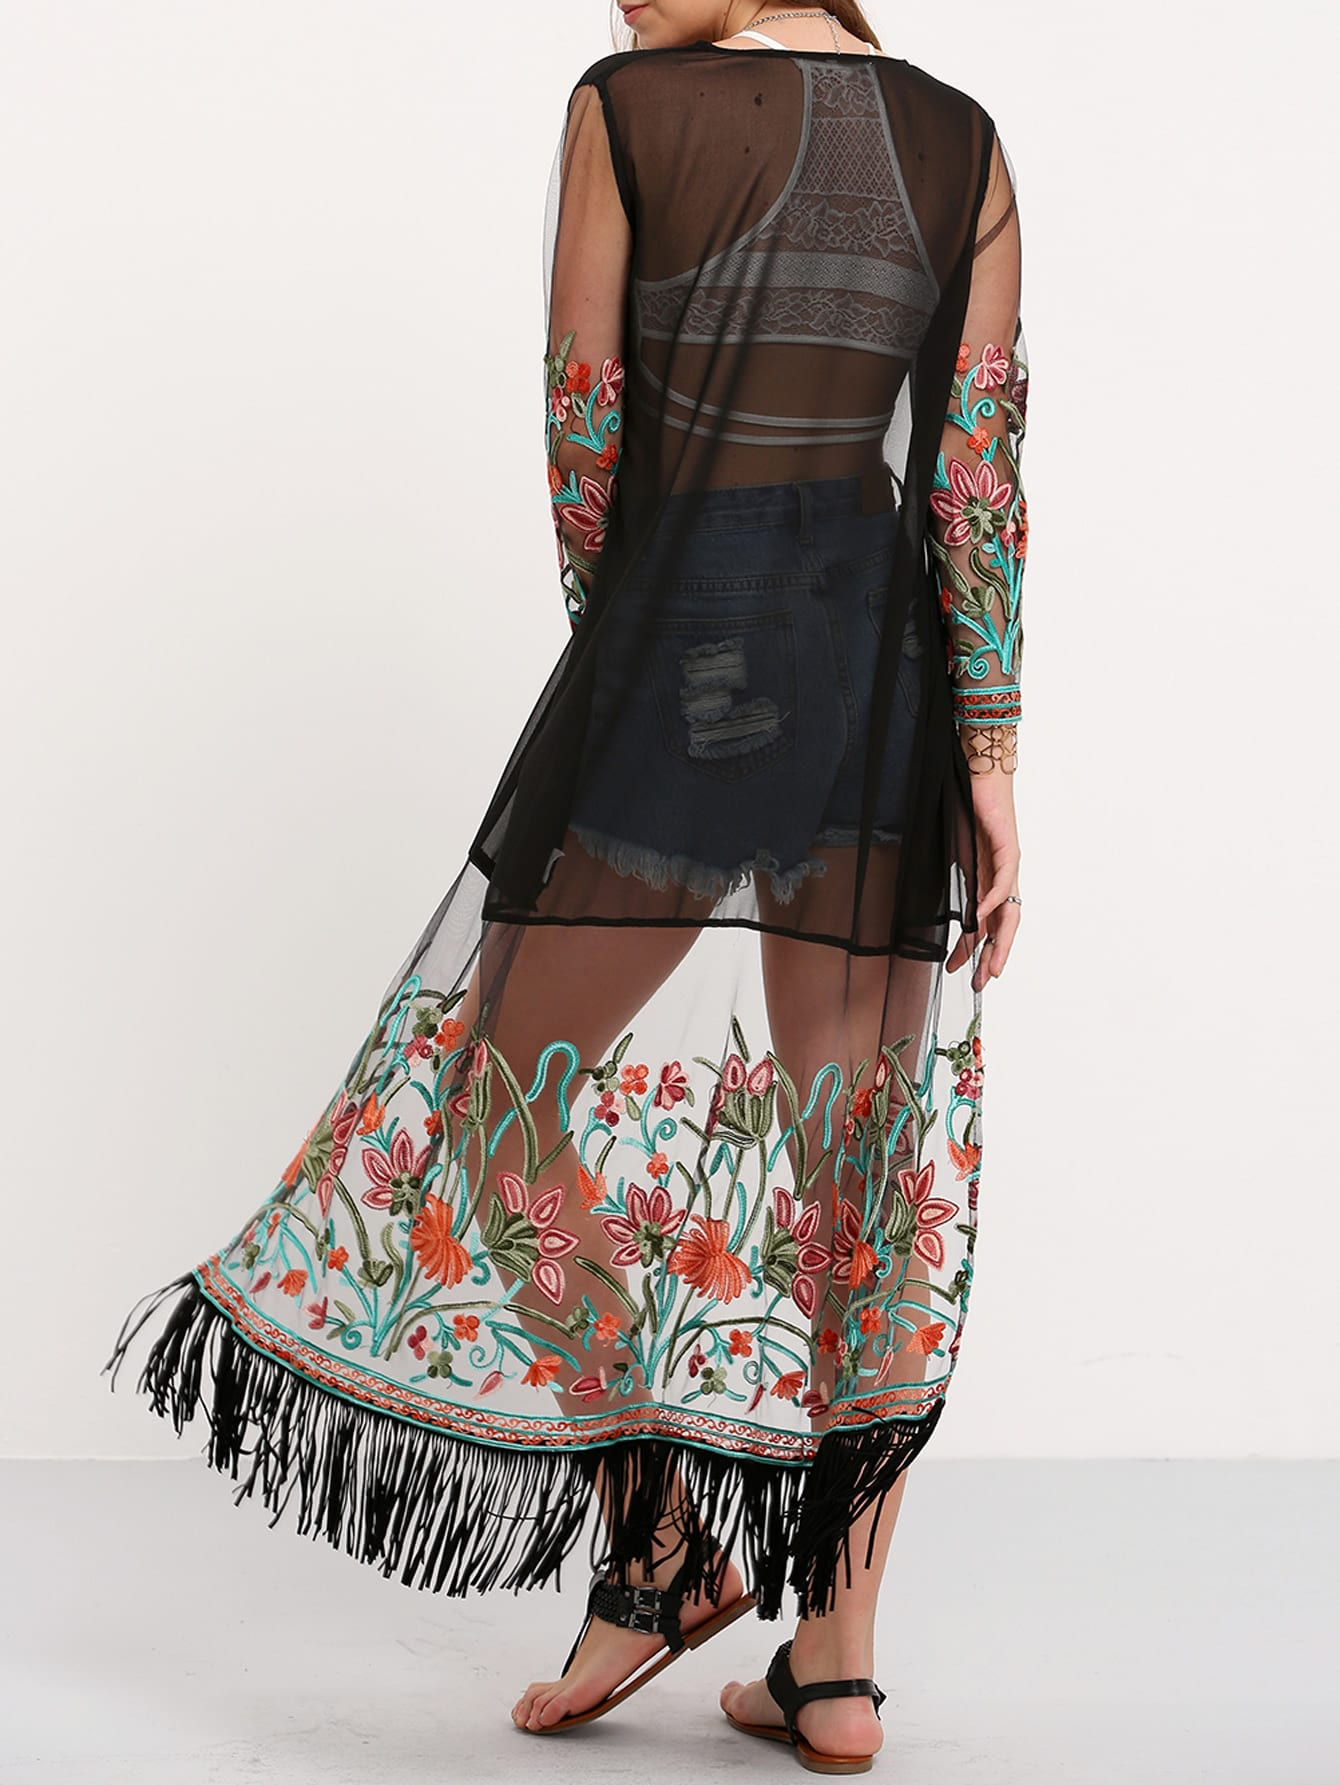 Transparent embroidered fringe long kimono shein sheinside